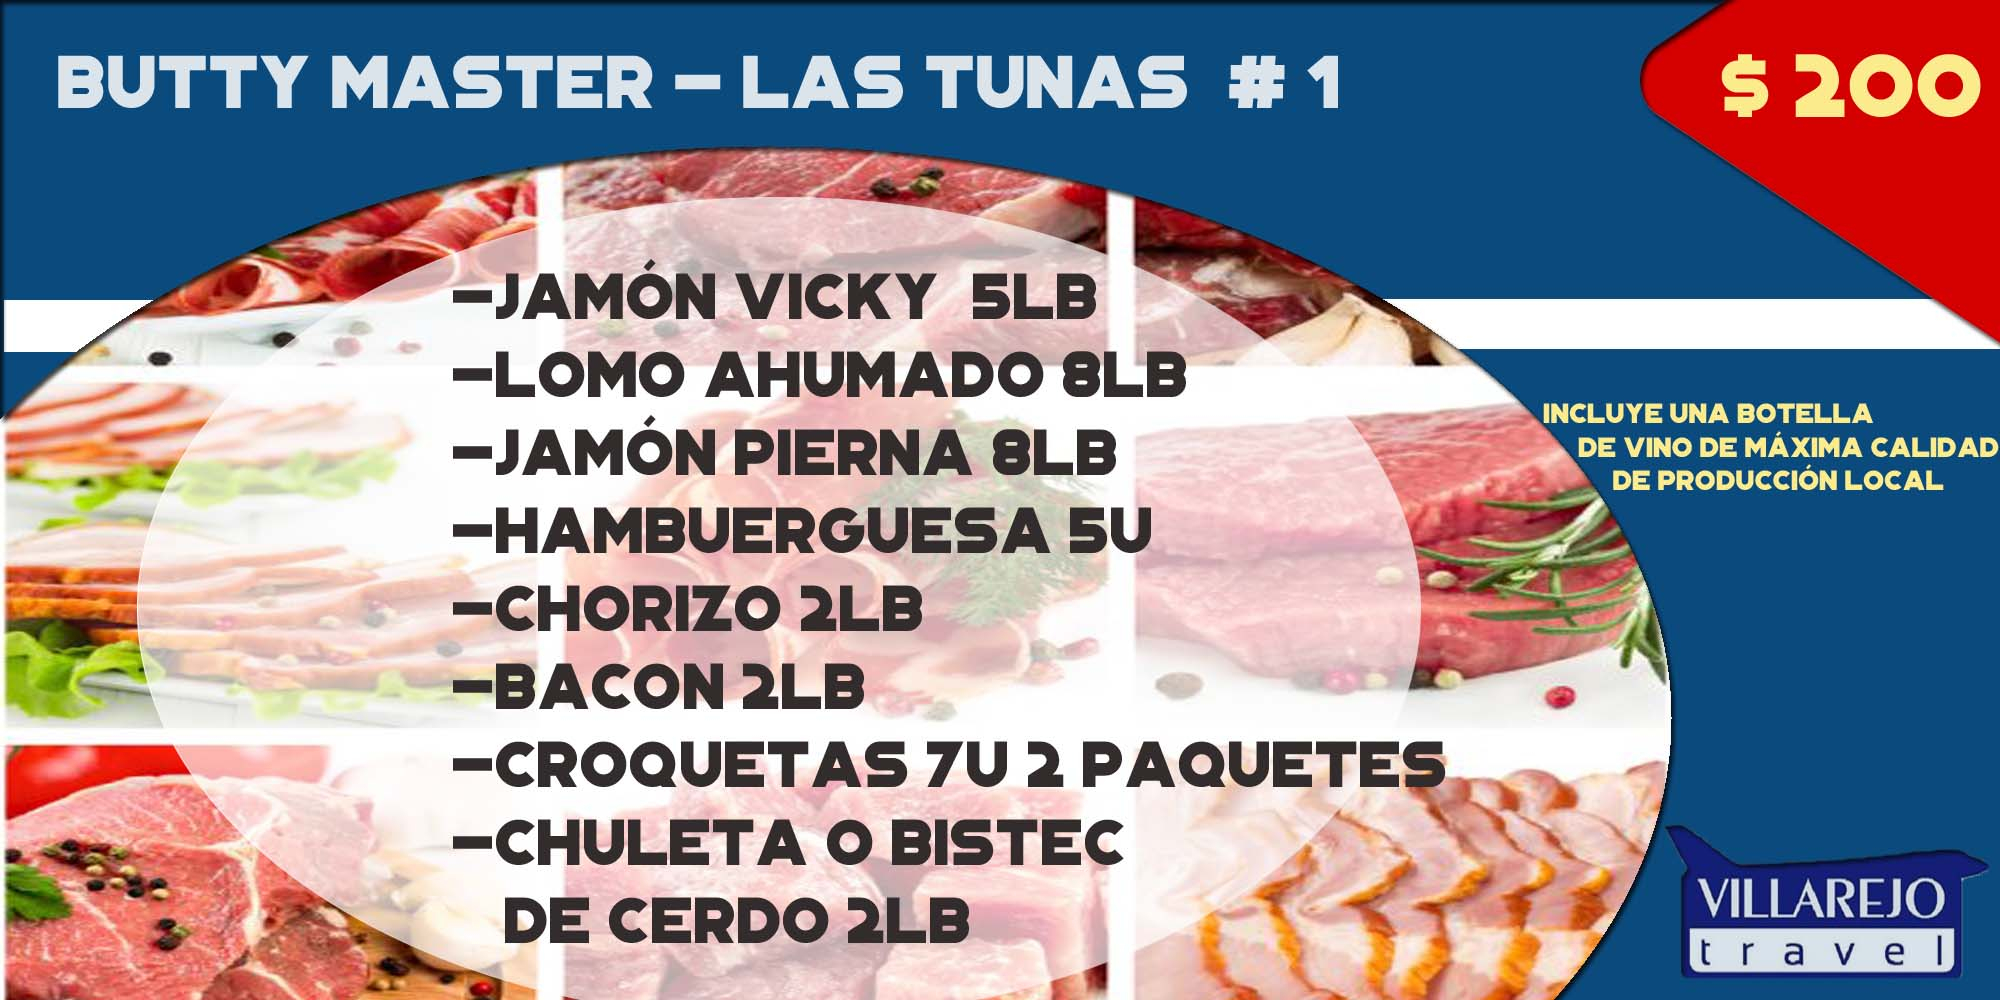 Butty Master Las Tunas  # 1